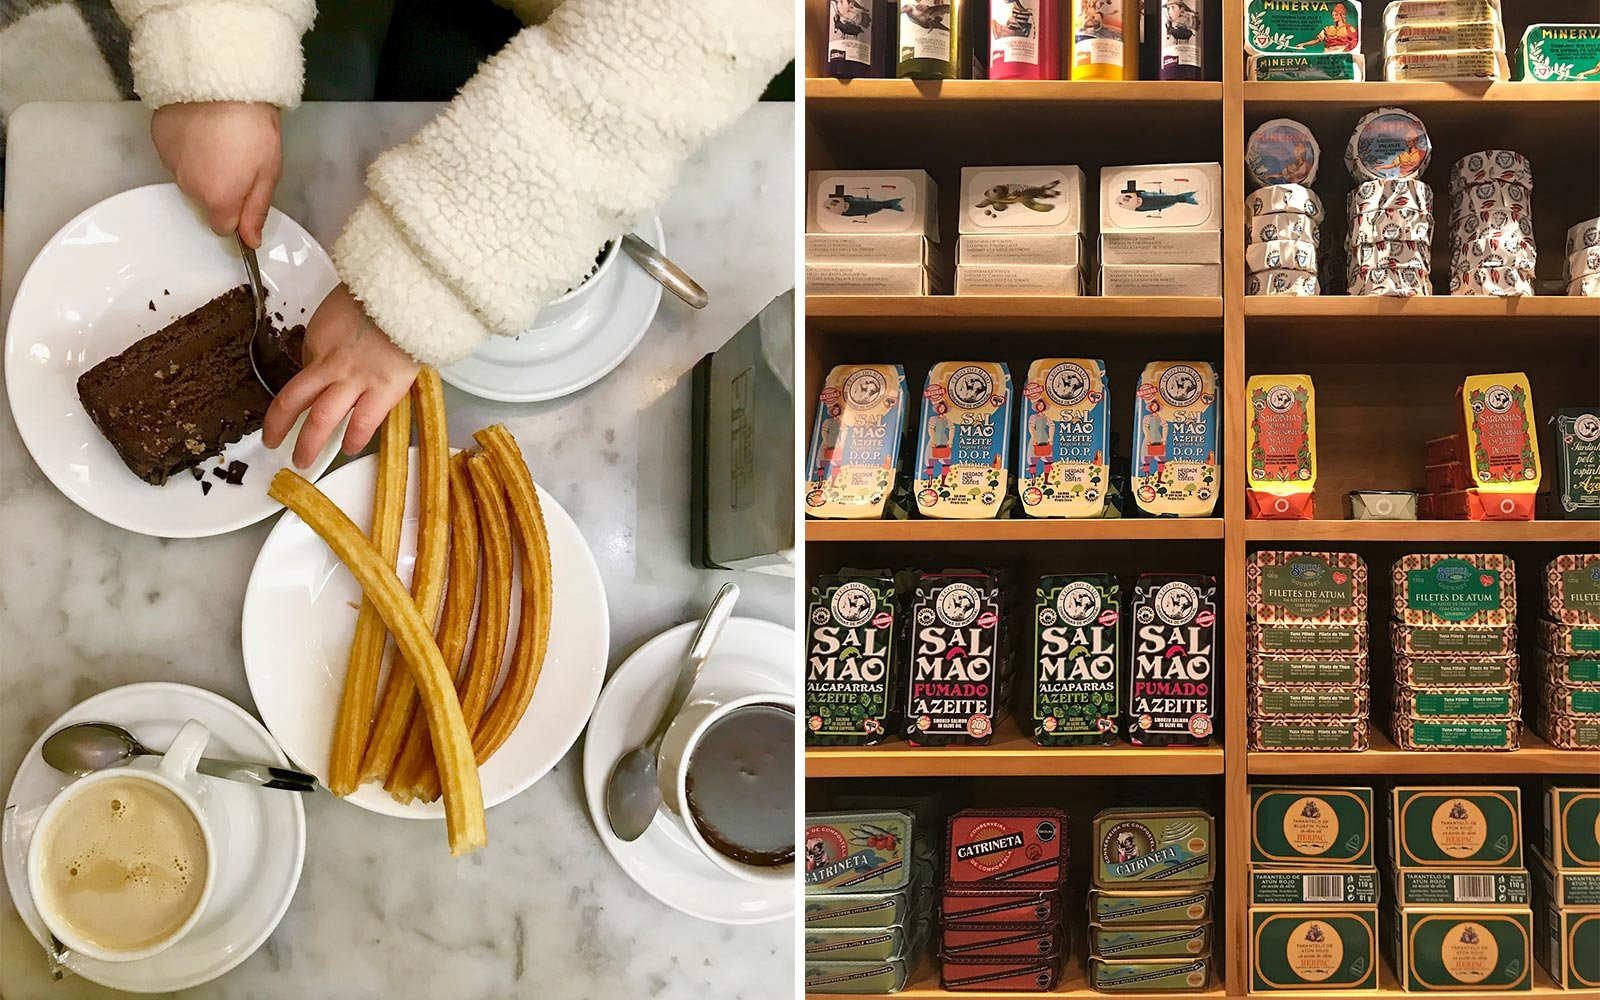 Churros at Chocolateria San Gines, and sardine tins at Salsamento tapas bar, in Spain